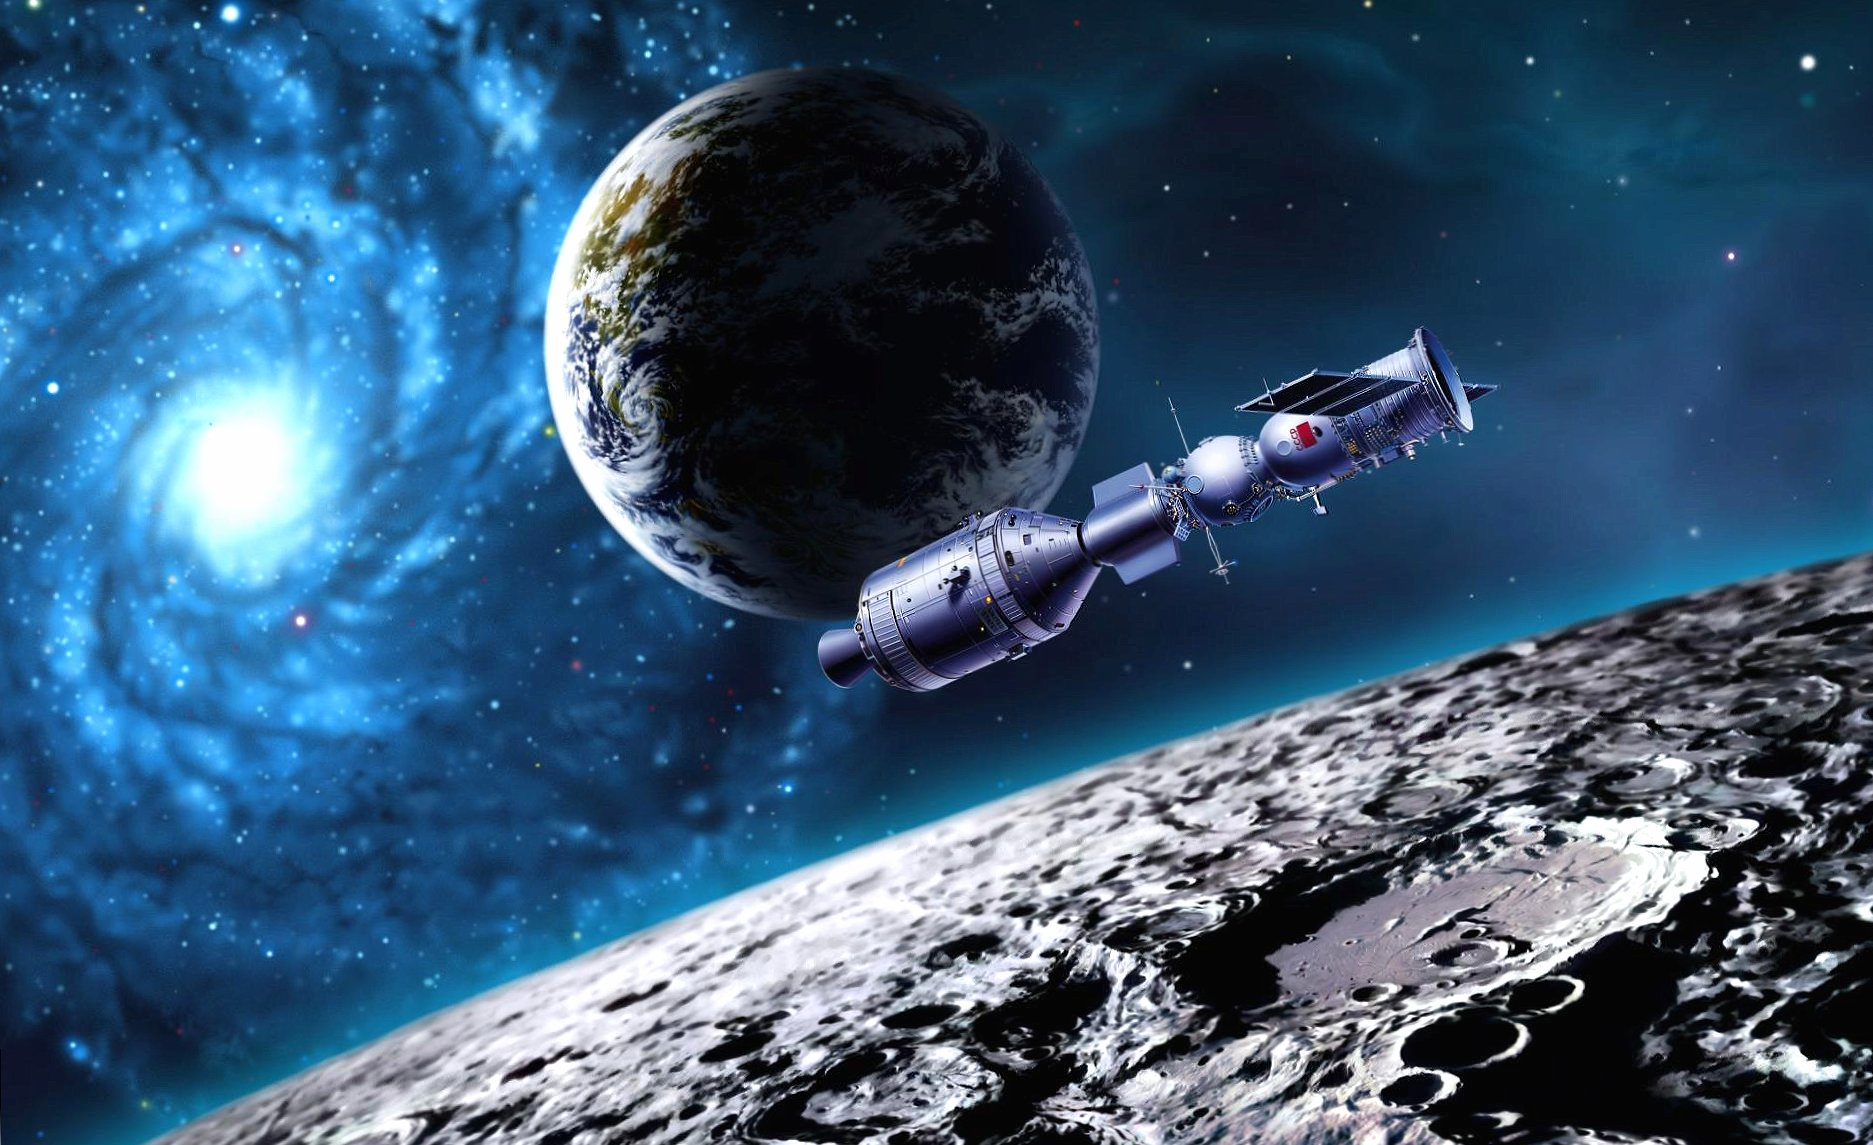 Spaceship near moon wallpapers HD quality